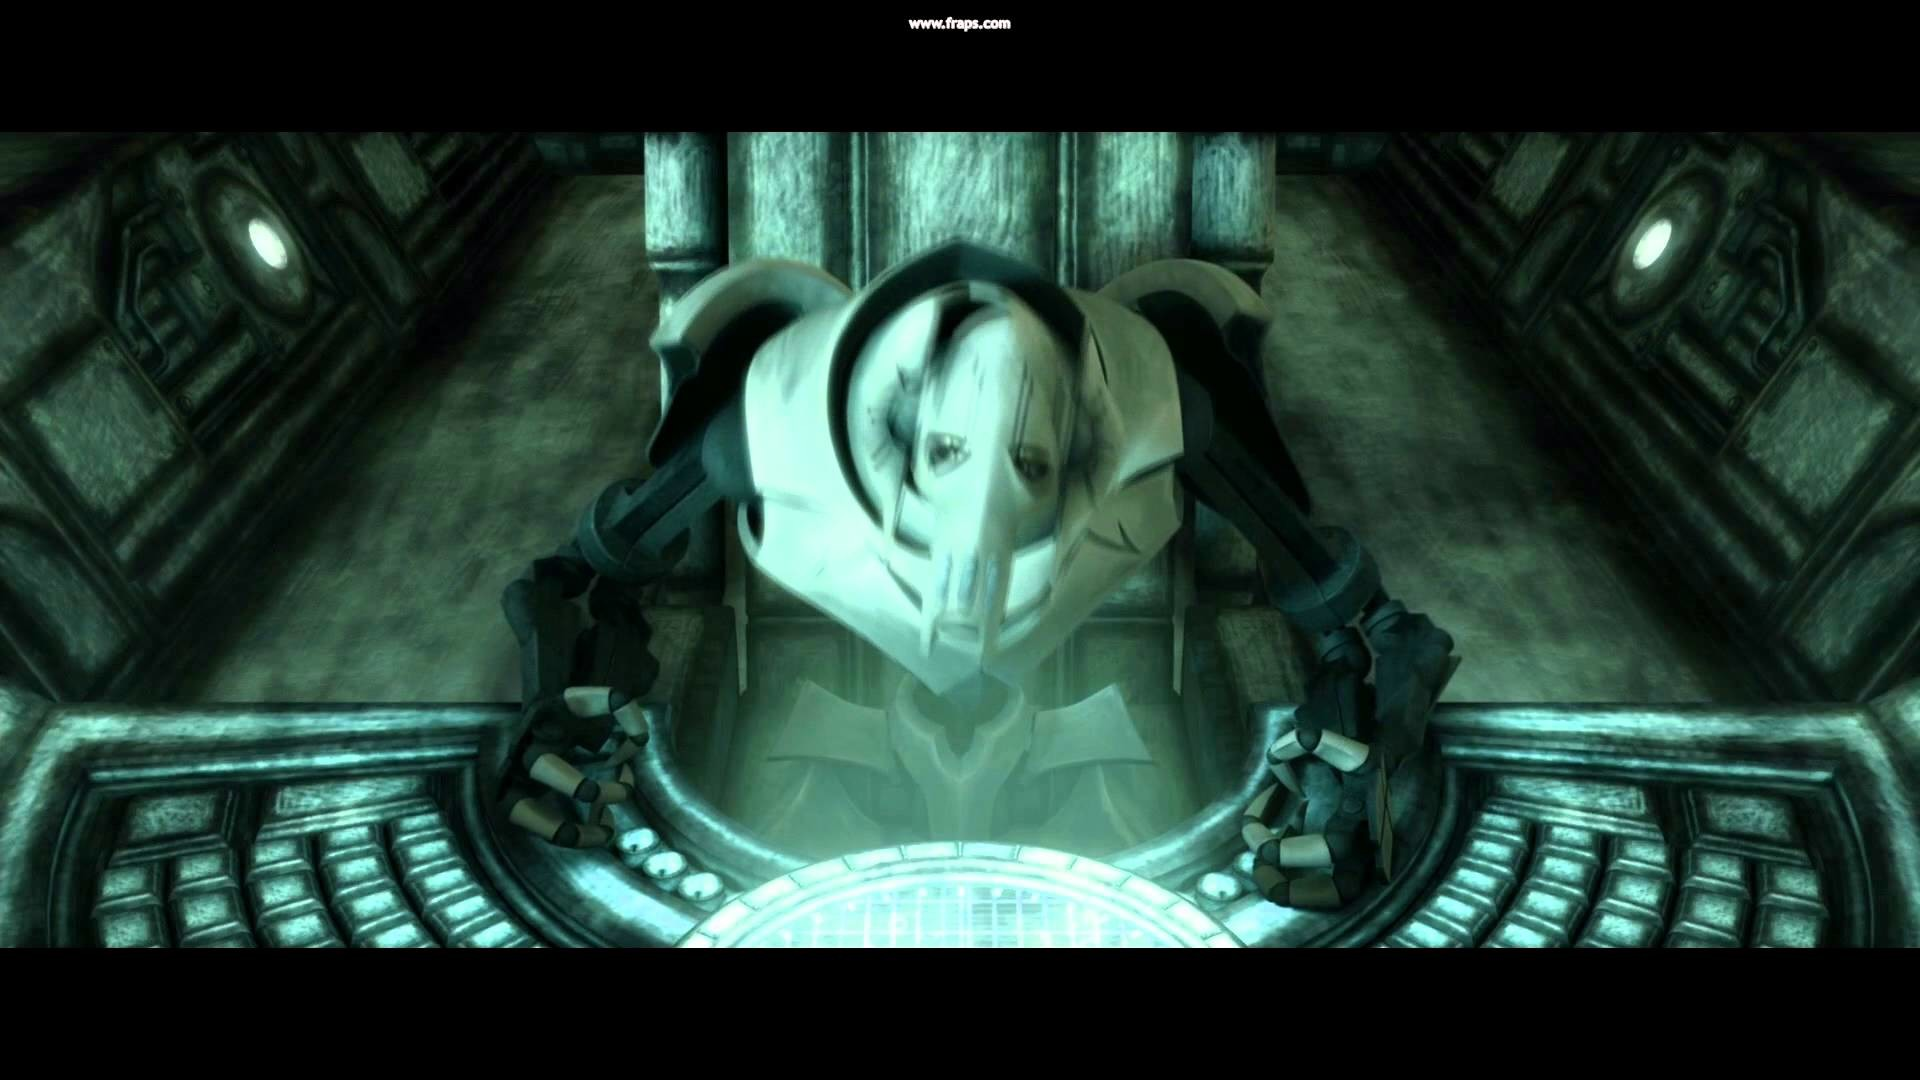 General Grievous – Awake and Alive